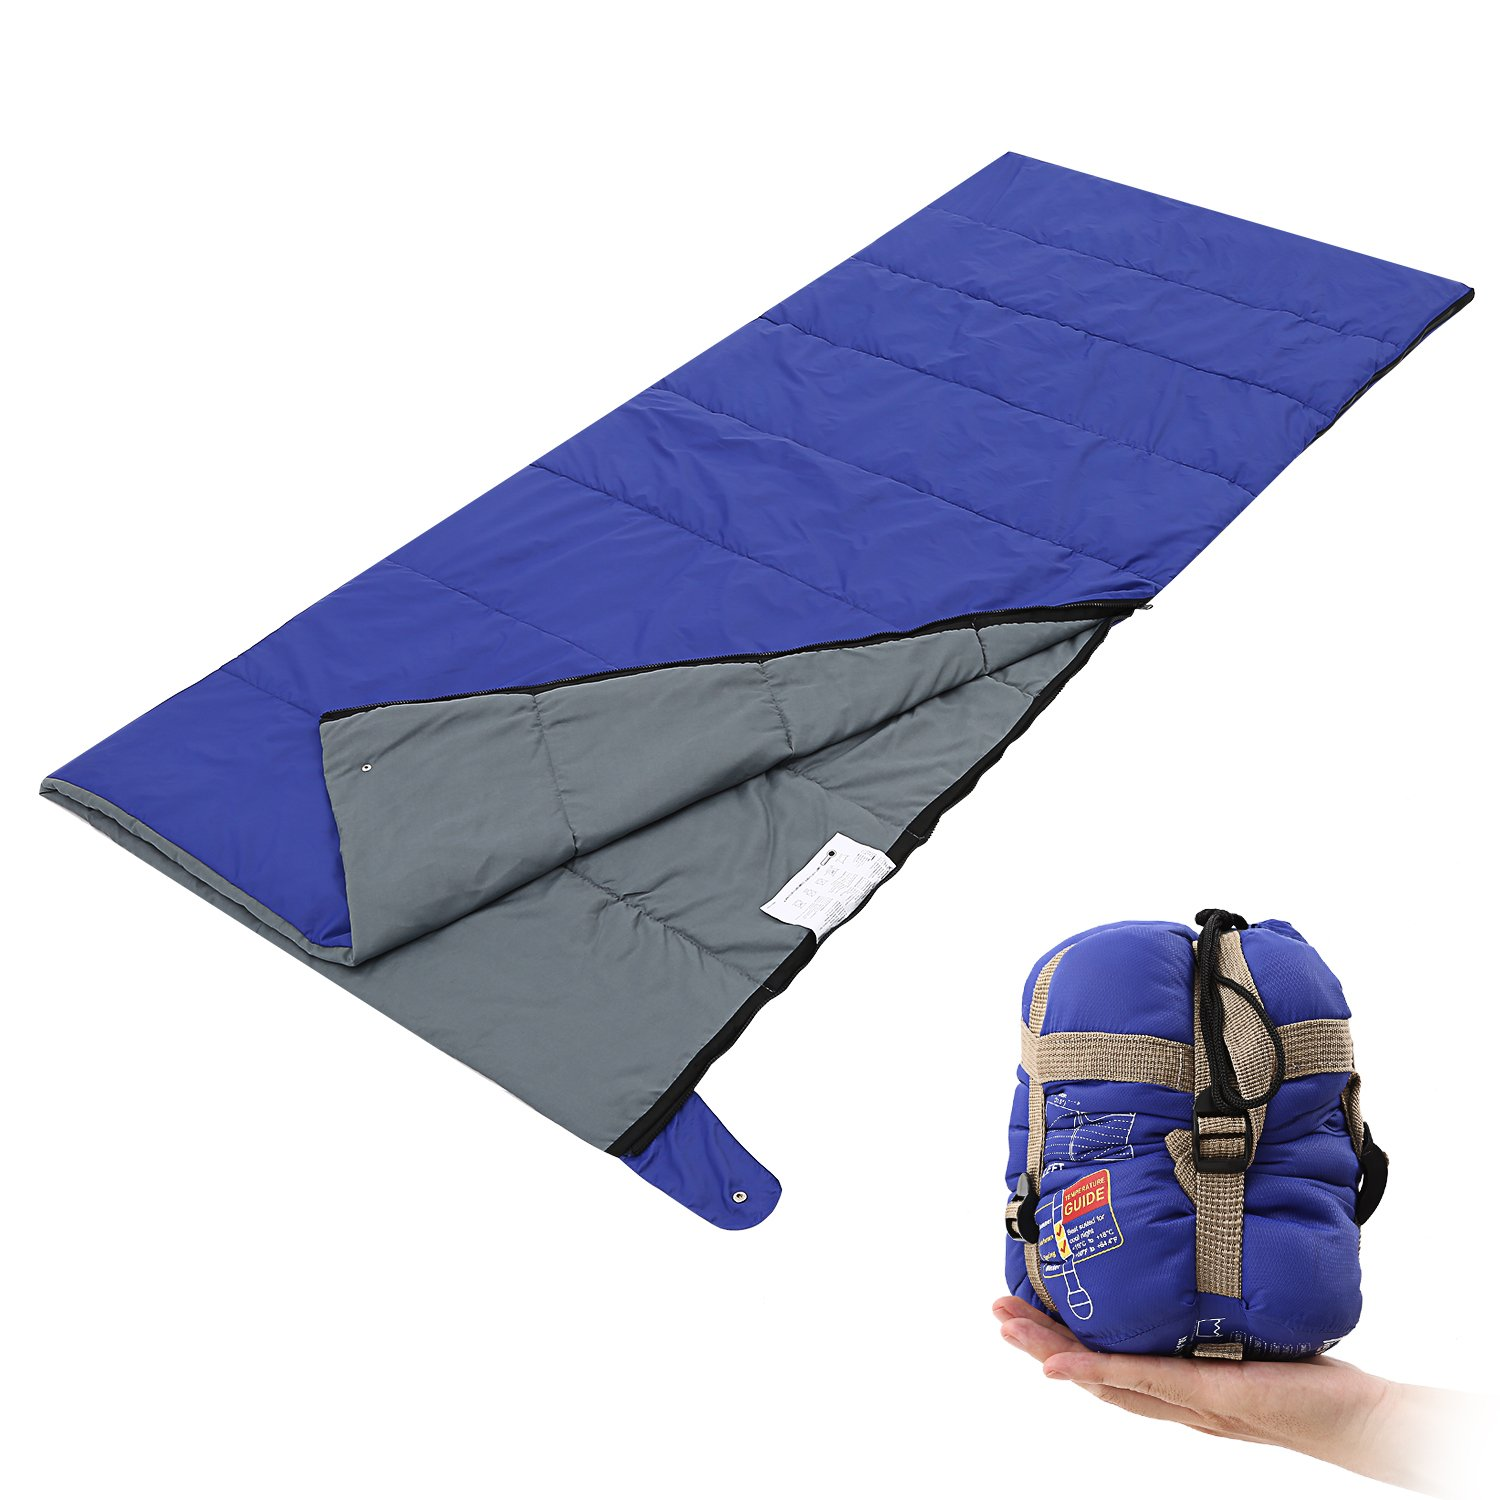 200 x 80 cm Warm Envelope Sleeping Bag with a Compression Bag 87 x 31 in Soft Bedspread Breathable Blanket for Hotel Travel Fully Machine Washable Andake 962g Lightweight Sleeping Bag